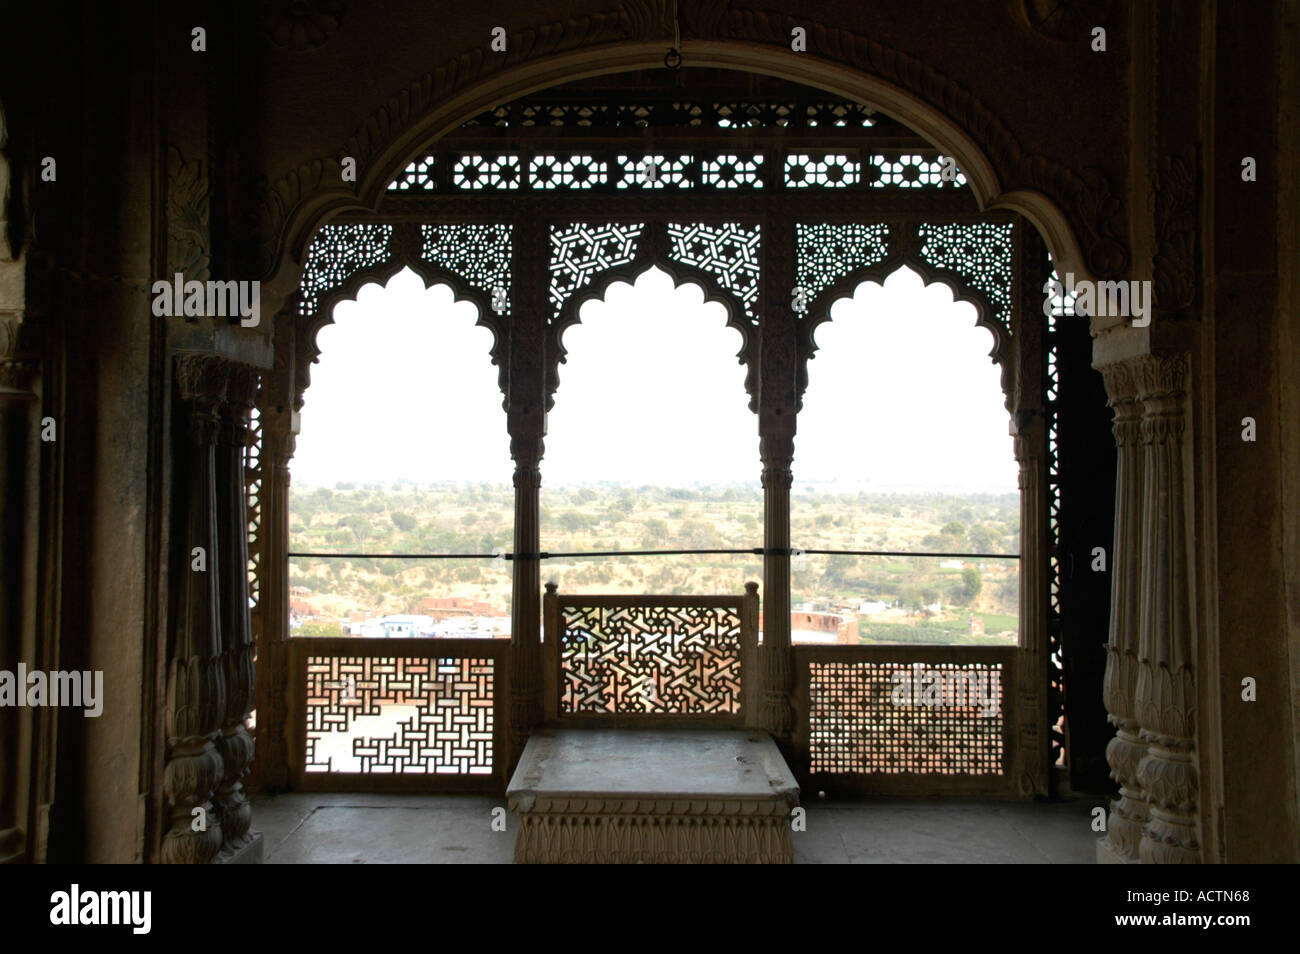 Open and richly ornamented hall city palace Karauli Rajasthan India Stock Photo